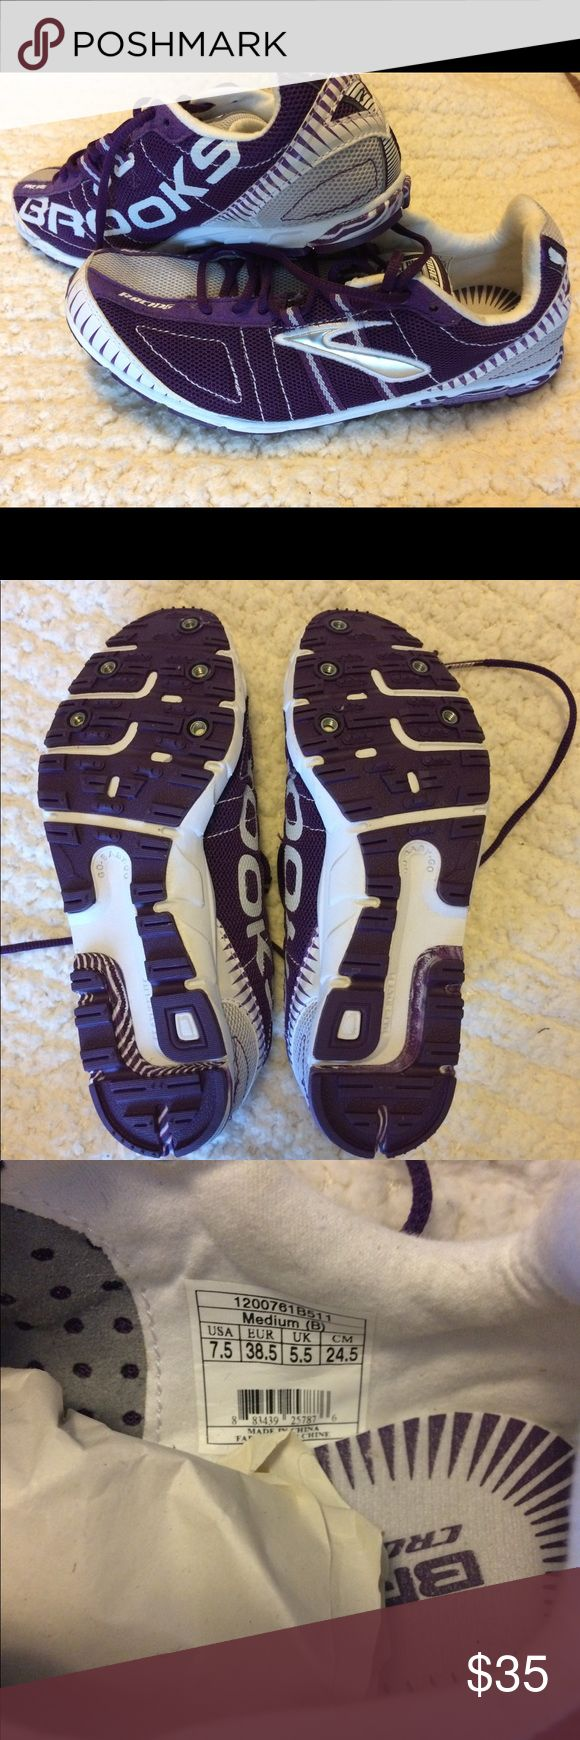 Brooks Running Spikes Women's size 7.5 brand new without tags. Comes with shoes only...no metal spikes included. Purple and white colored Brooks Shoes Athletic Shoes